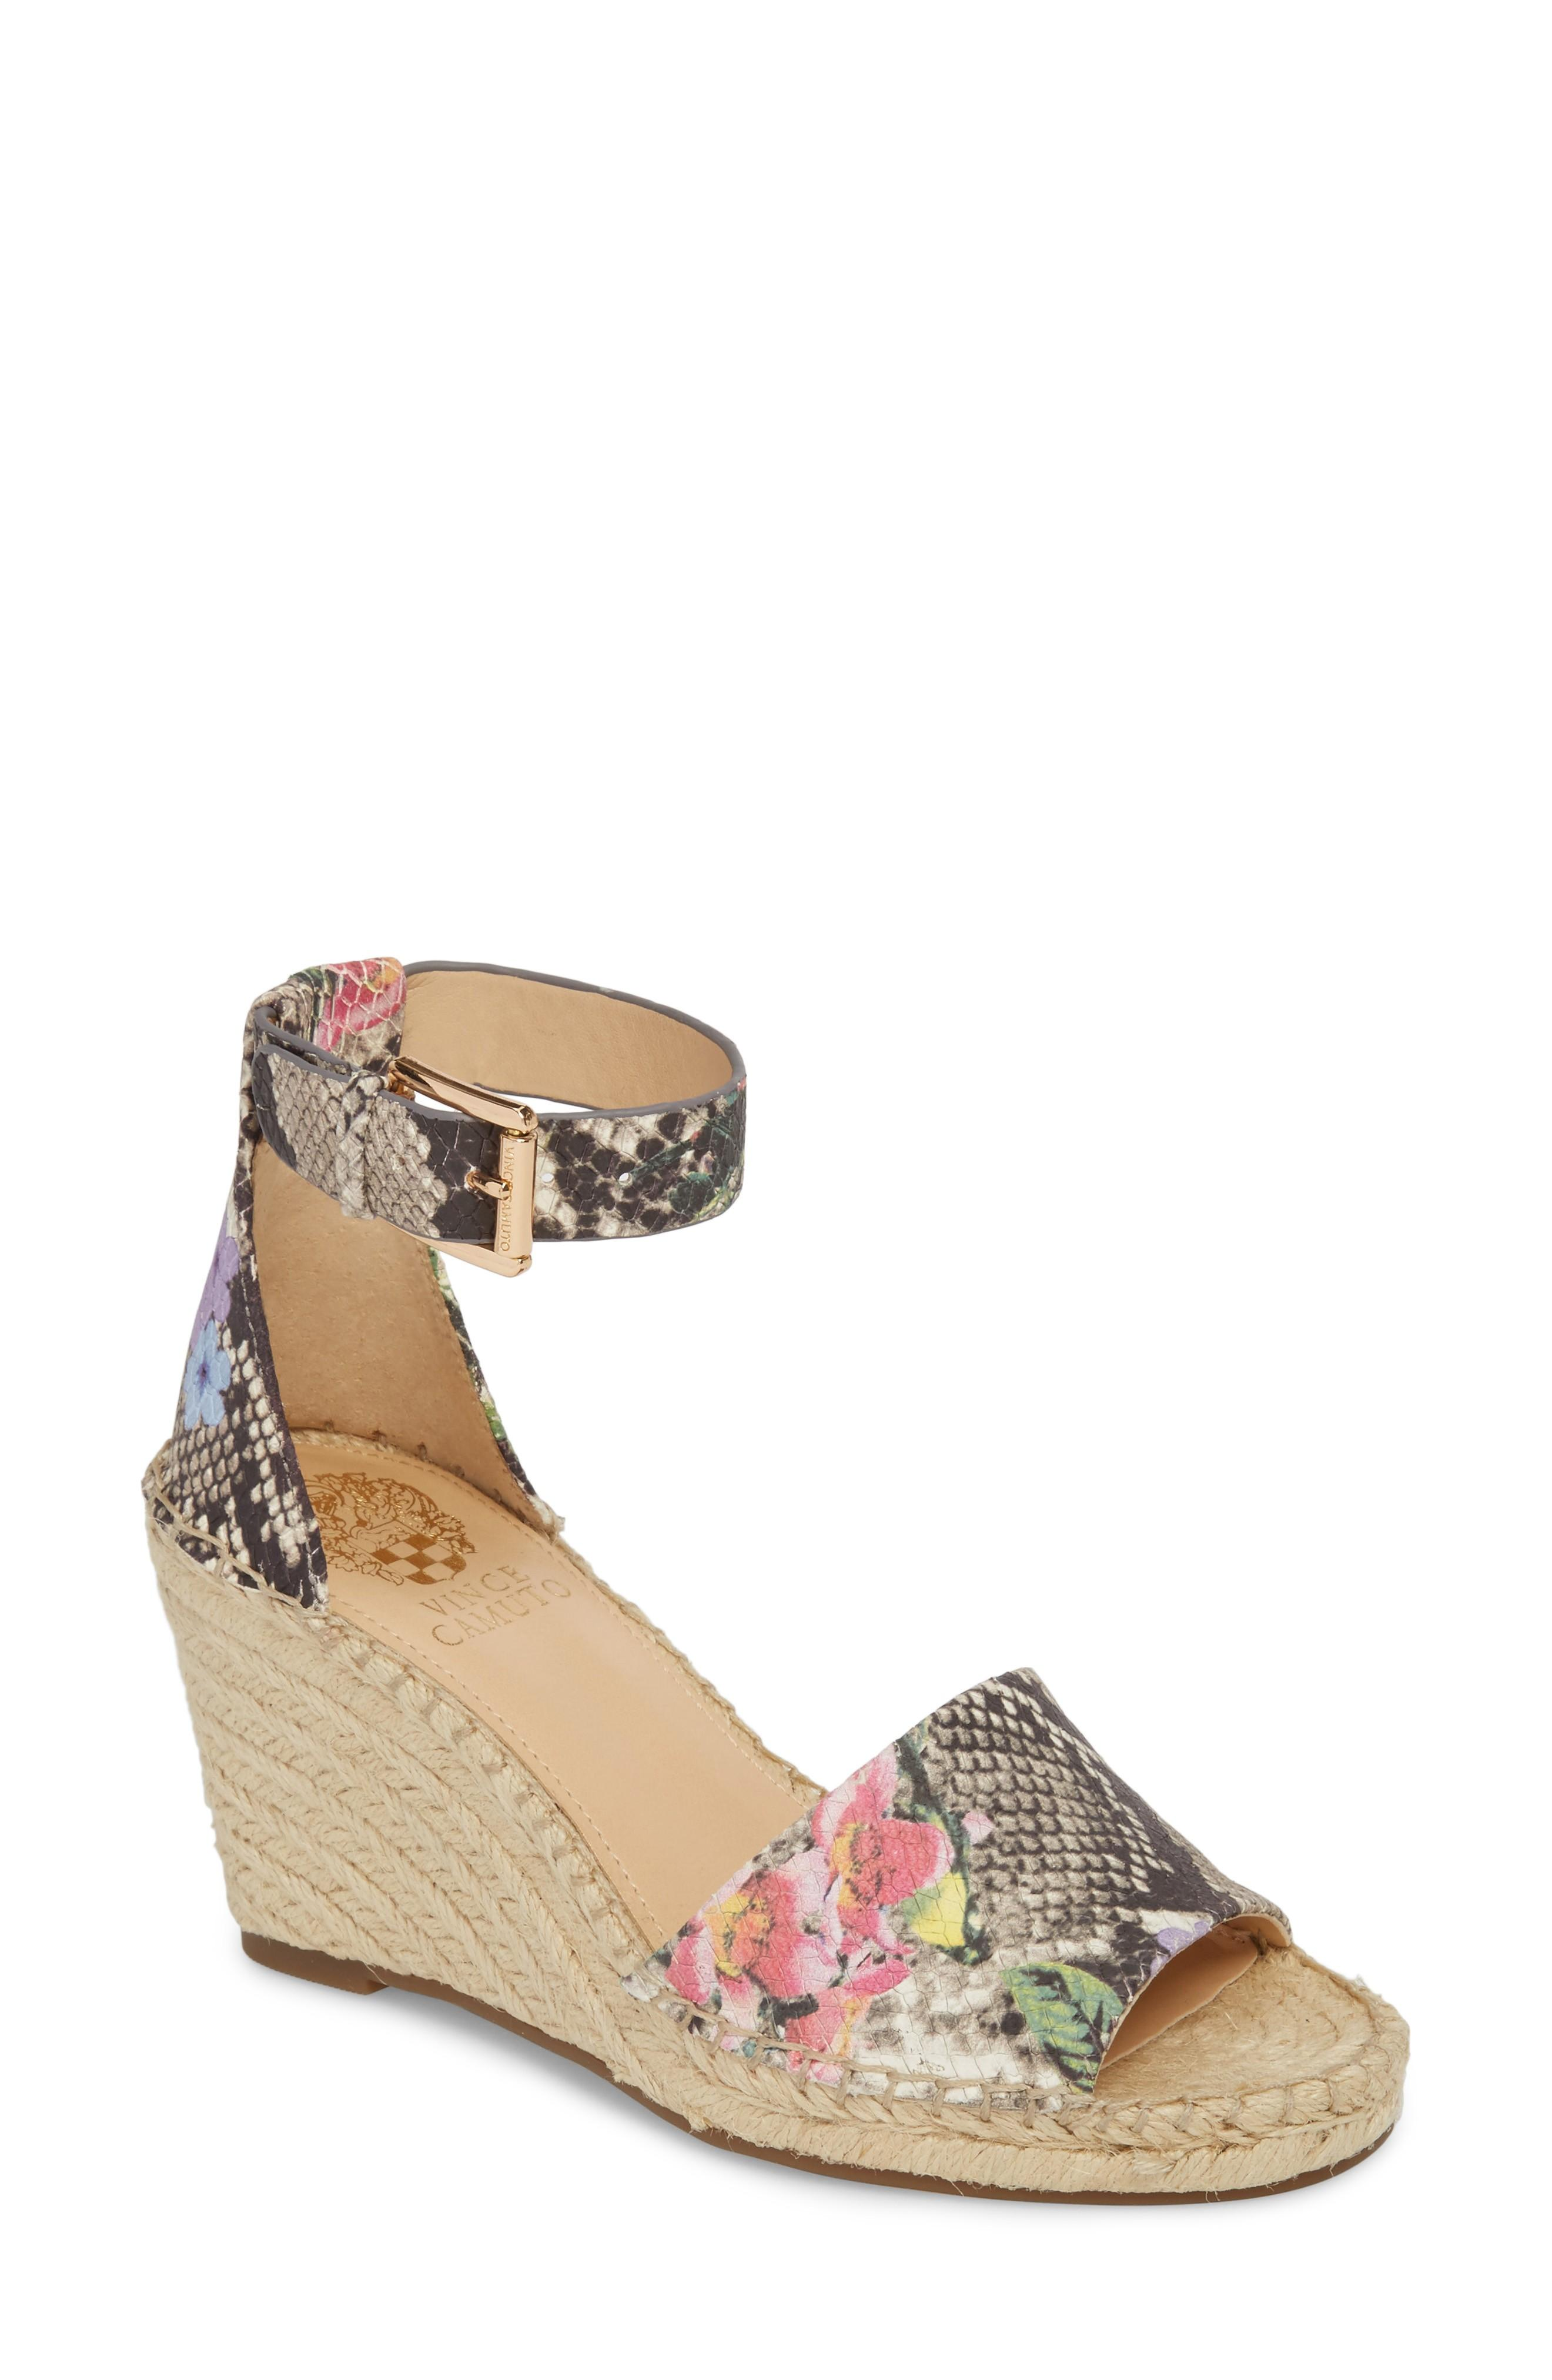 24739202f99 Style Name  Vince Camuto Leera Wedge Sandal (Women). Style Number  5523144.